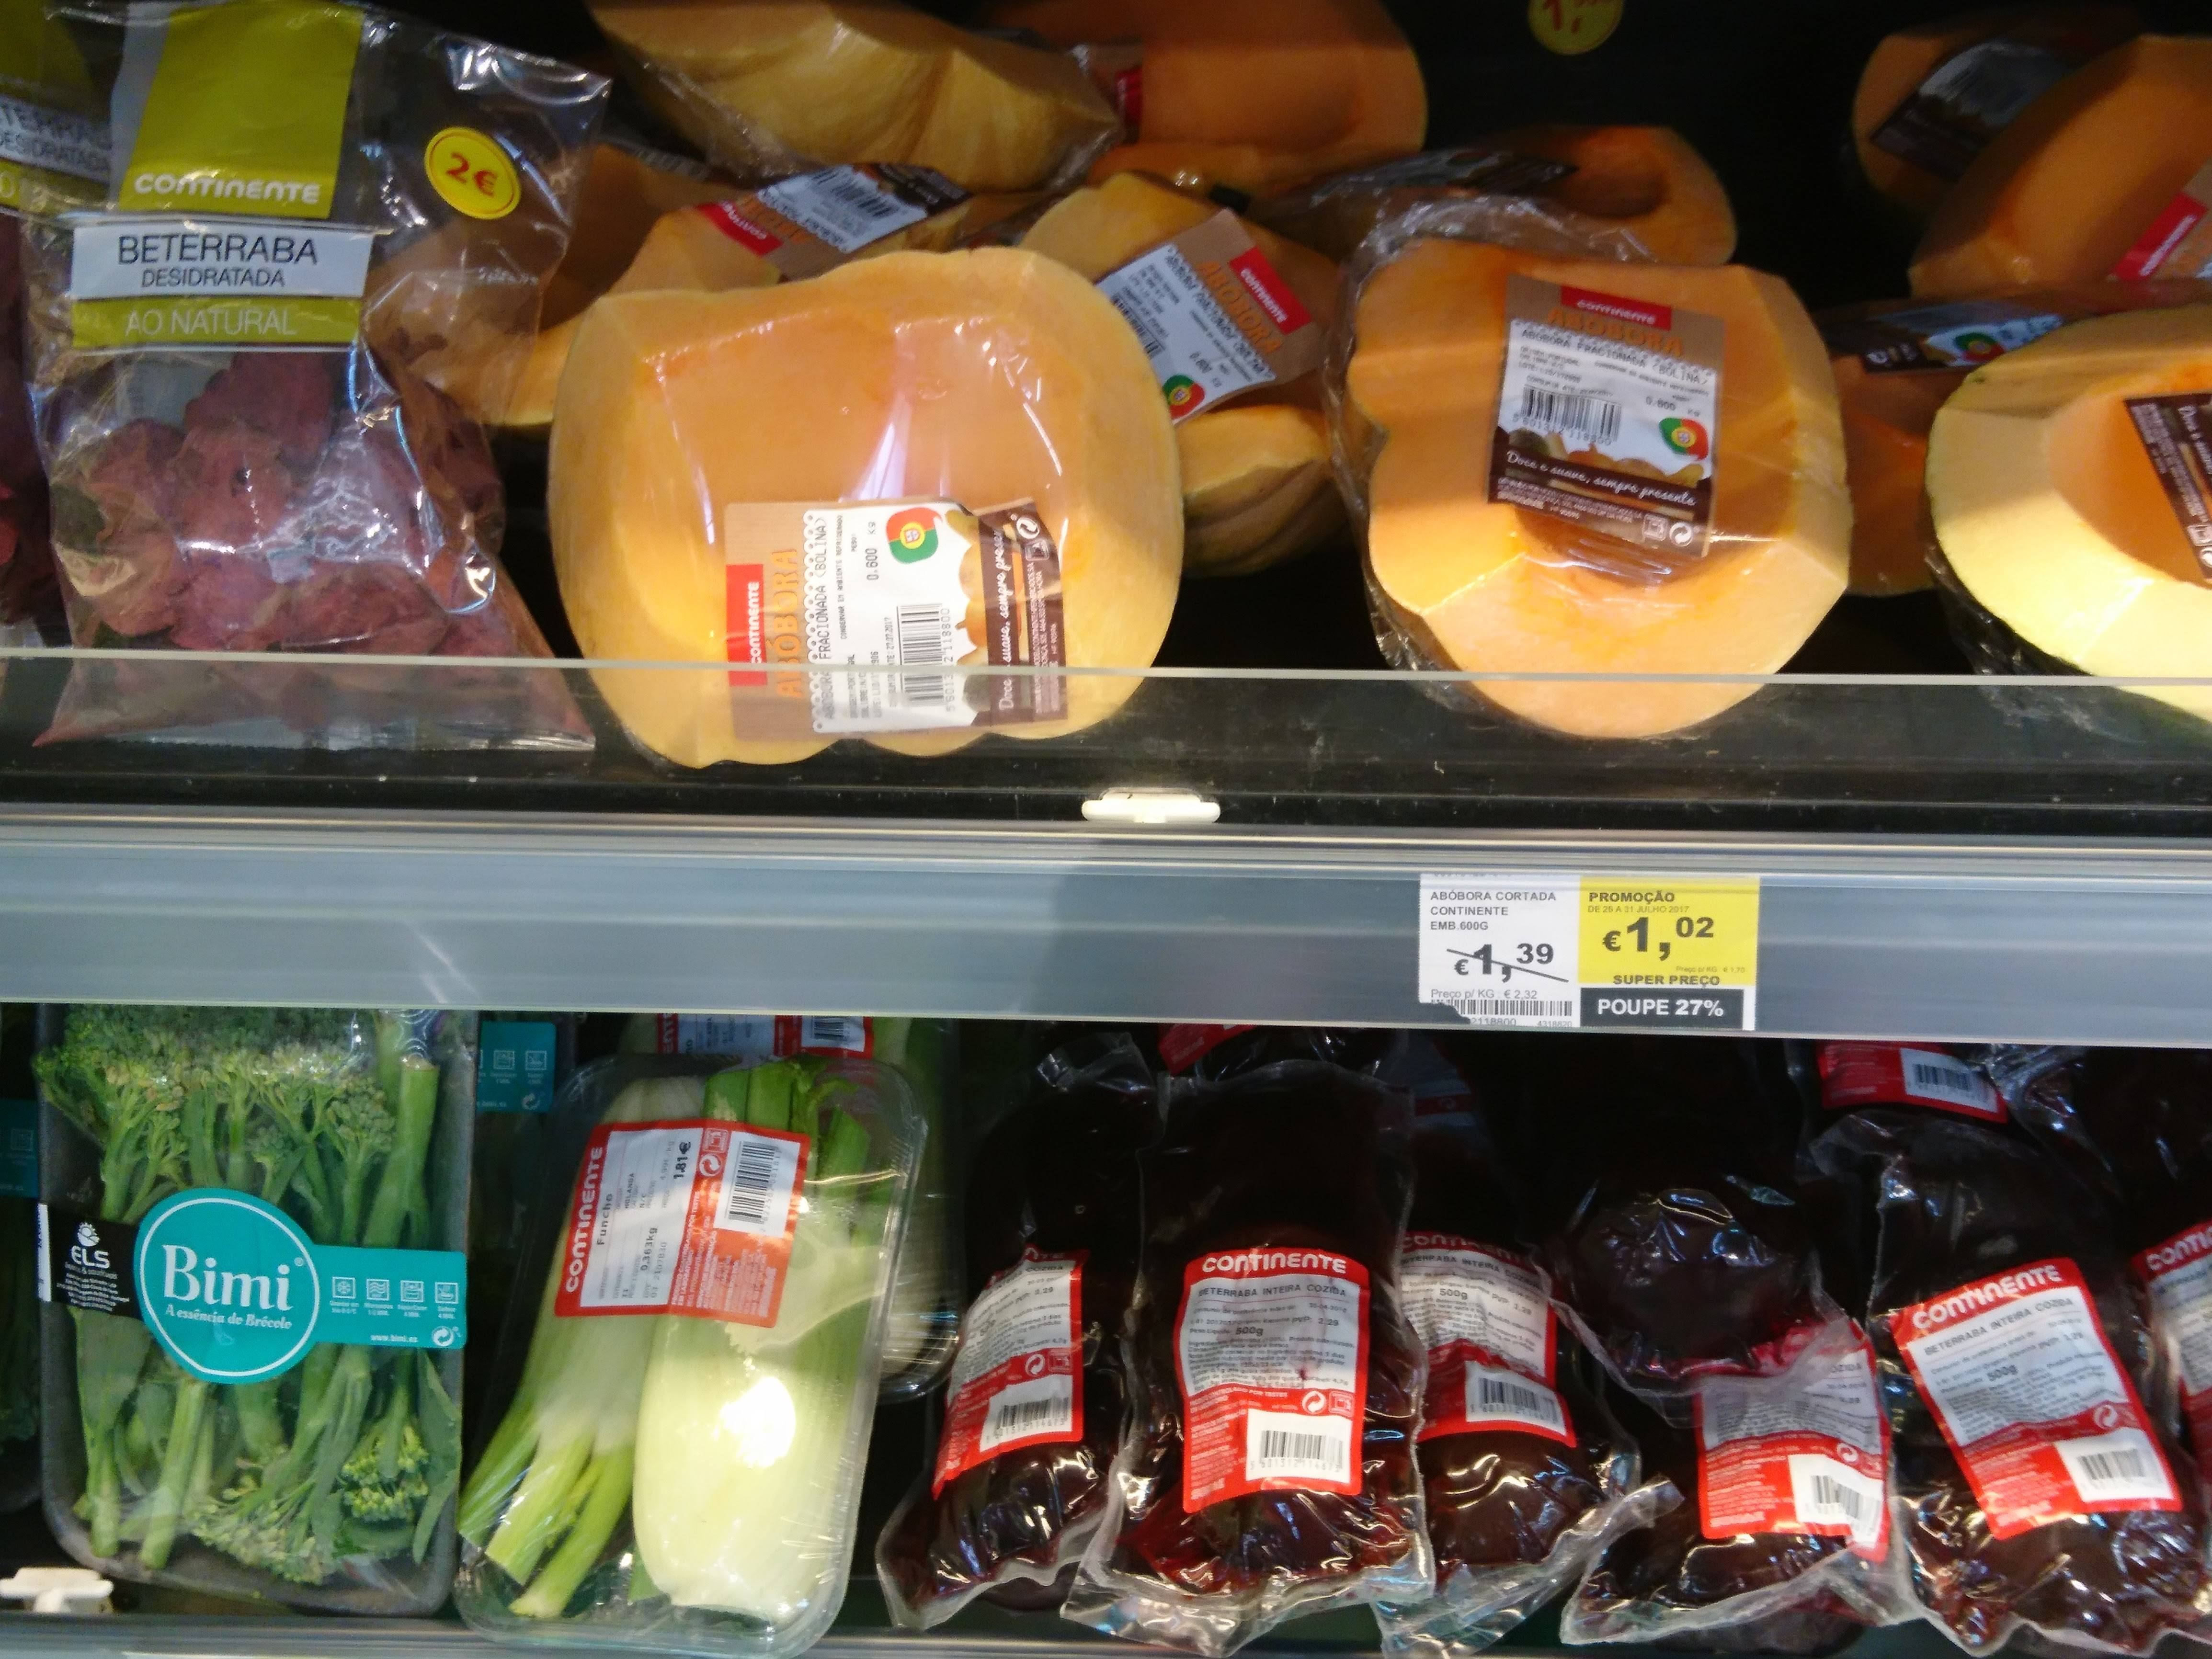 Cooking Tips | Welcome to my Butternut Squash Vs Pumpkin – here is the shelves with the fresh pumpkin on sale.